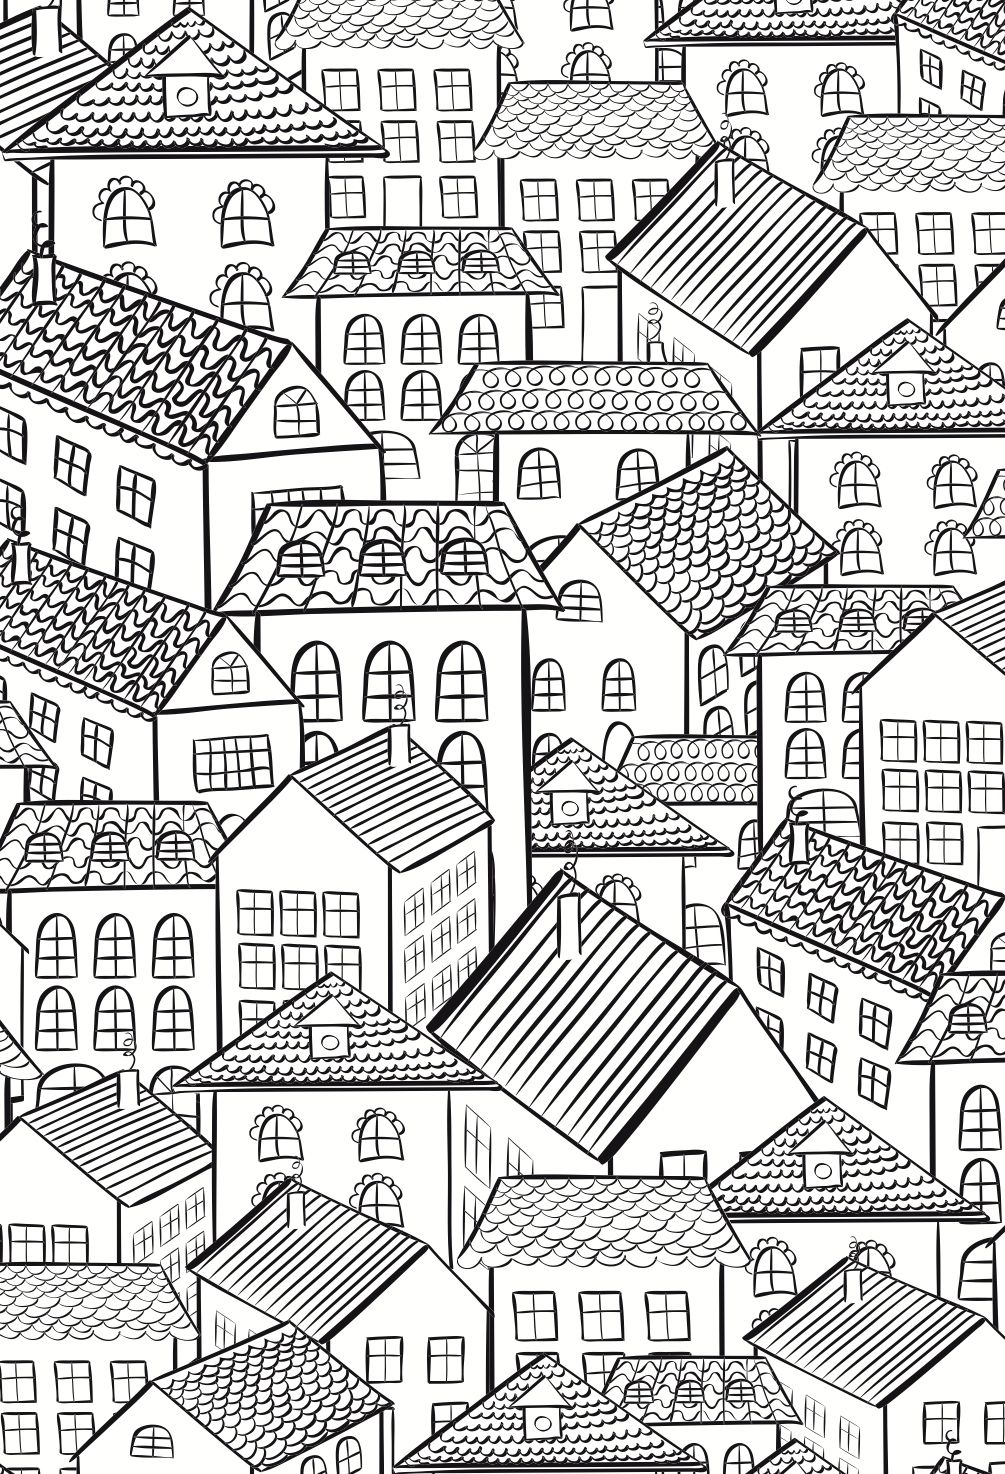 Free printable coloring pages for adults city - Colouring For Adults Anti Stress Colouring Printables